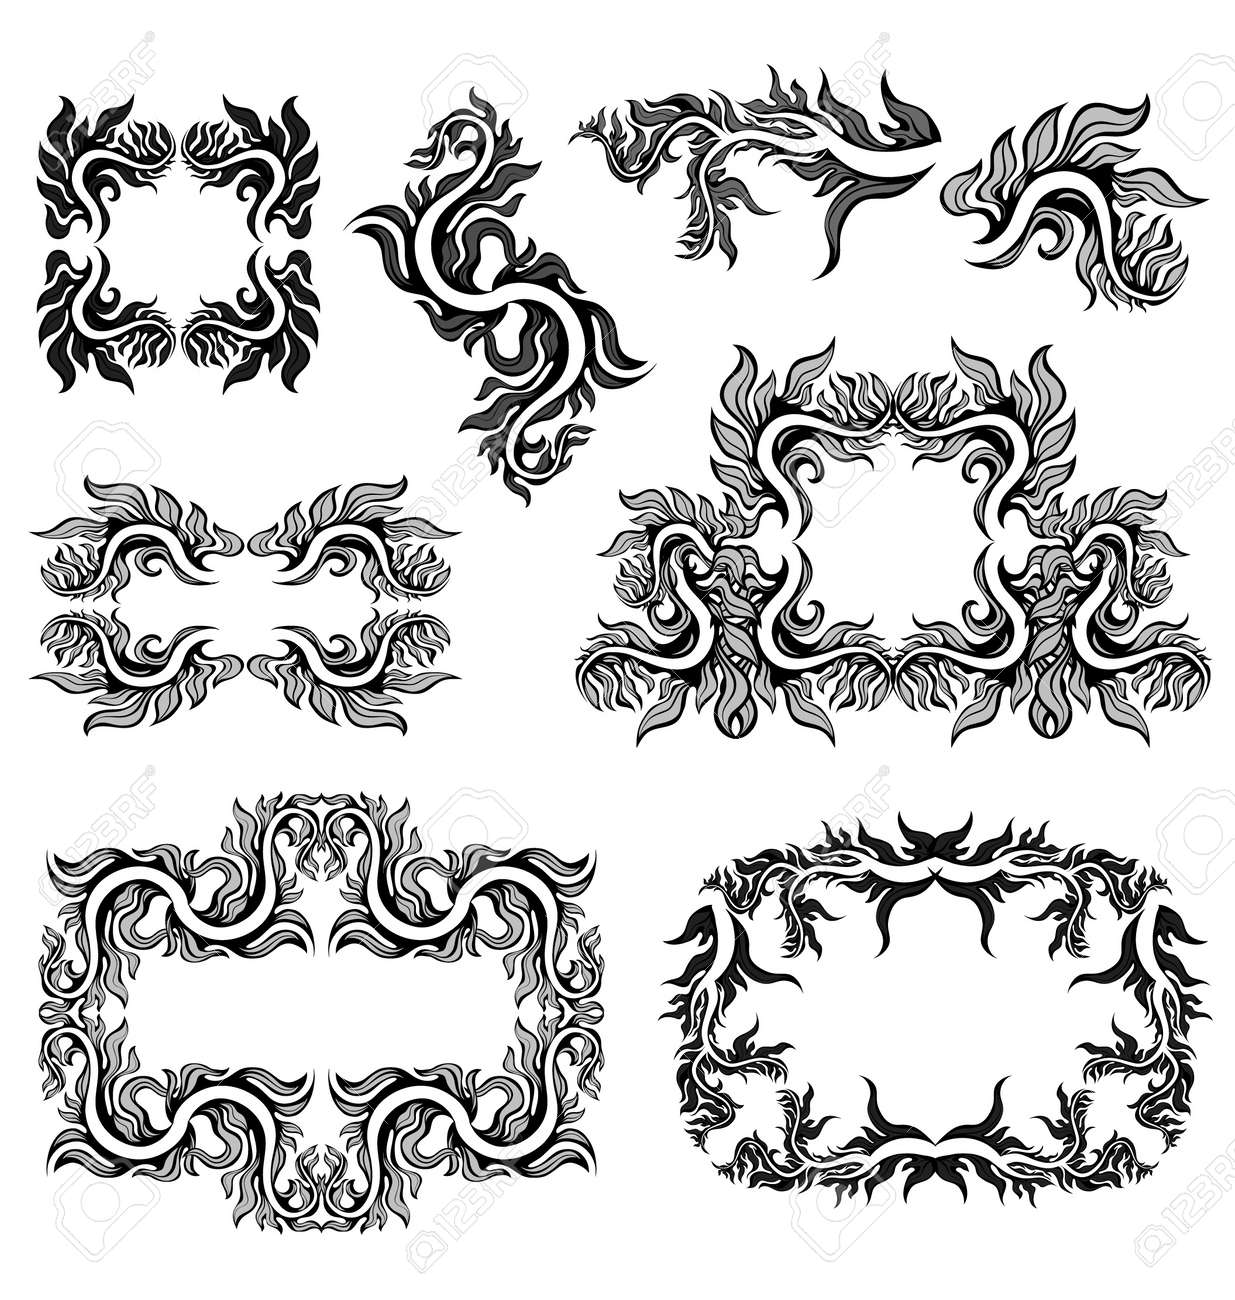 graphic floral frames Stock Vector - 10502563